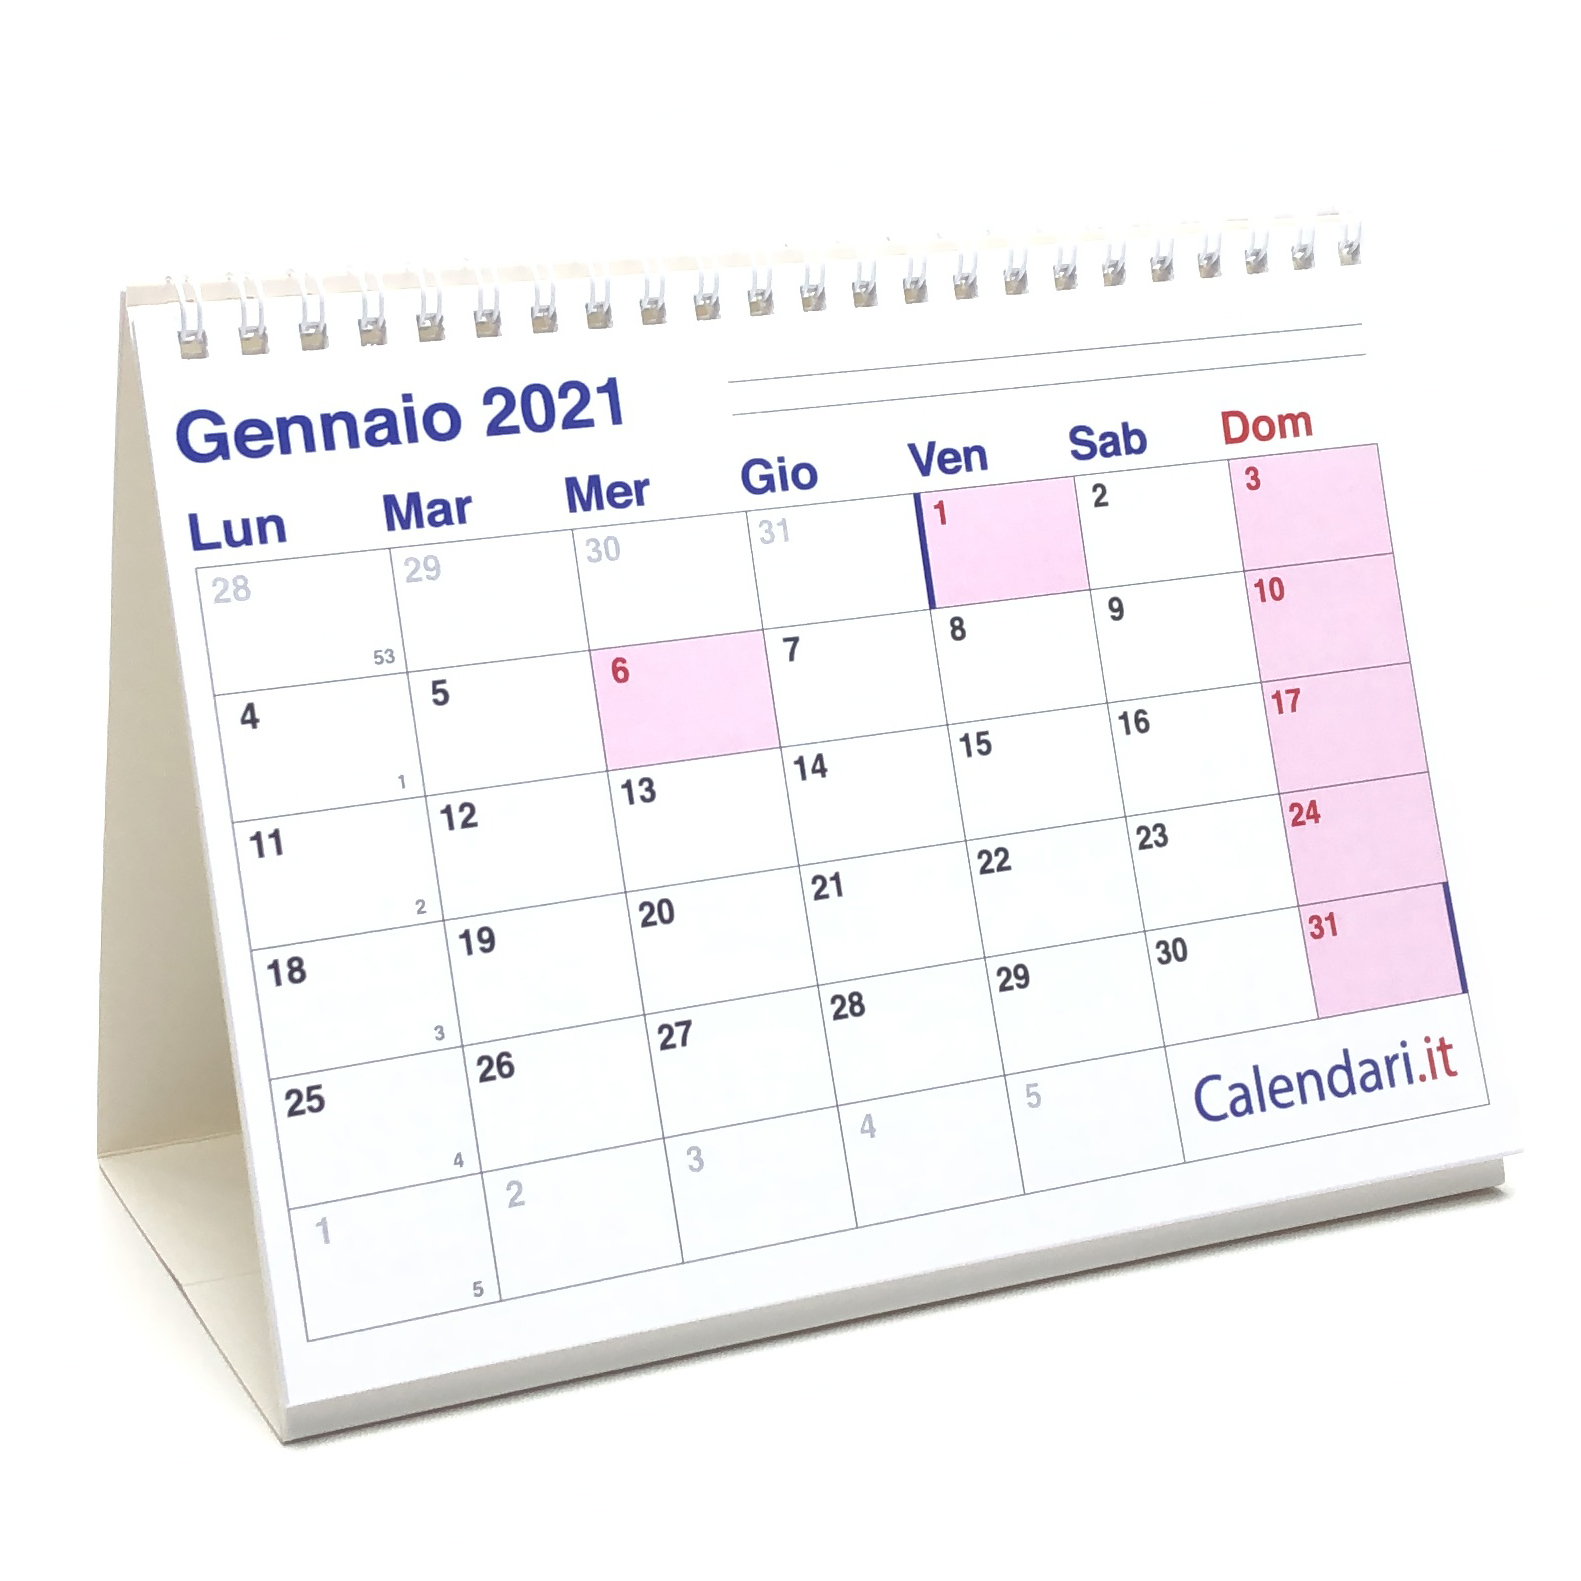 Calendario 2021 tavolo a caselle 20x15 cm   Calendari.it